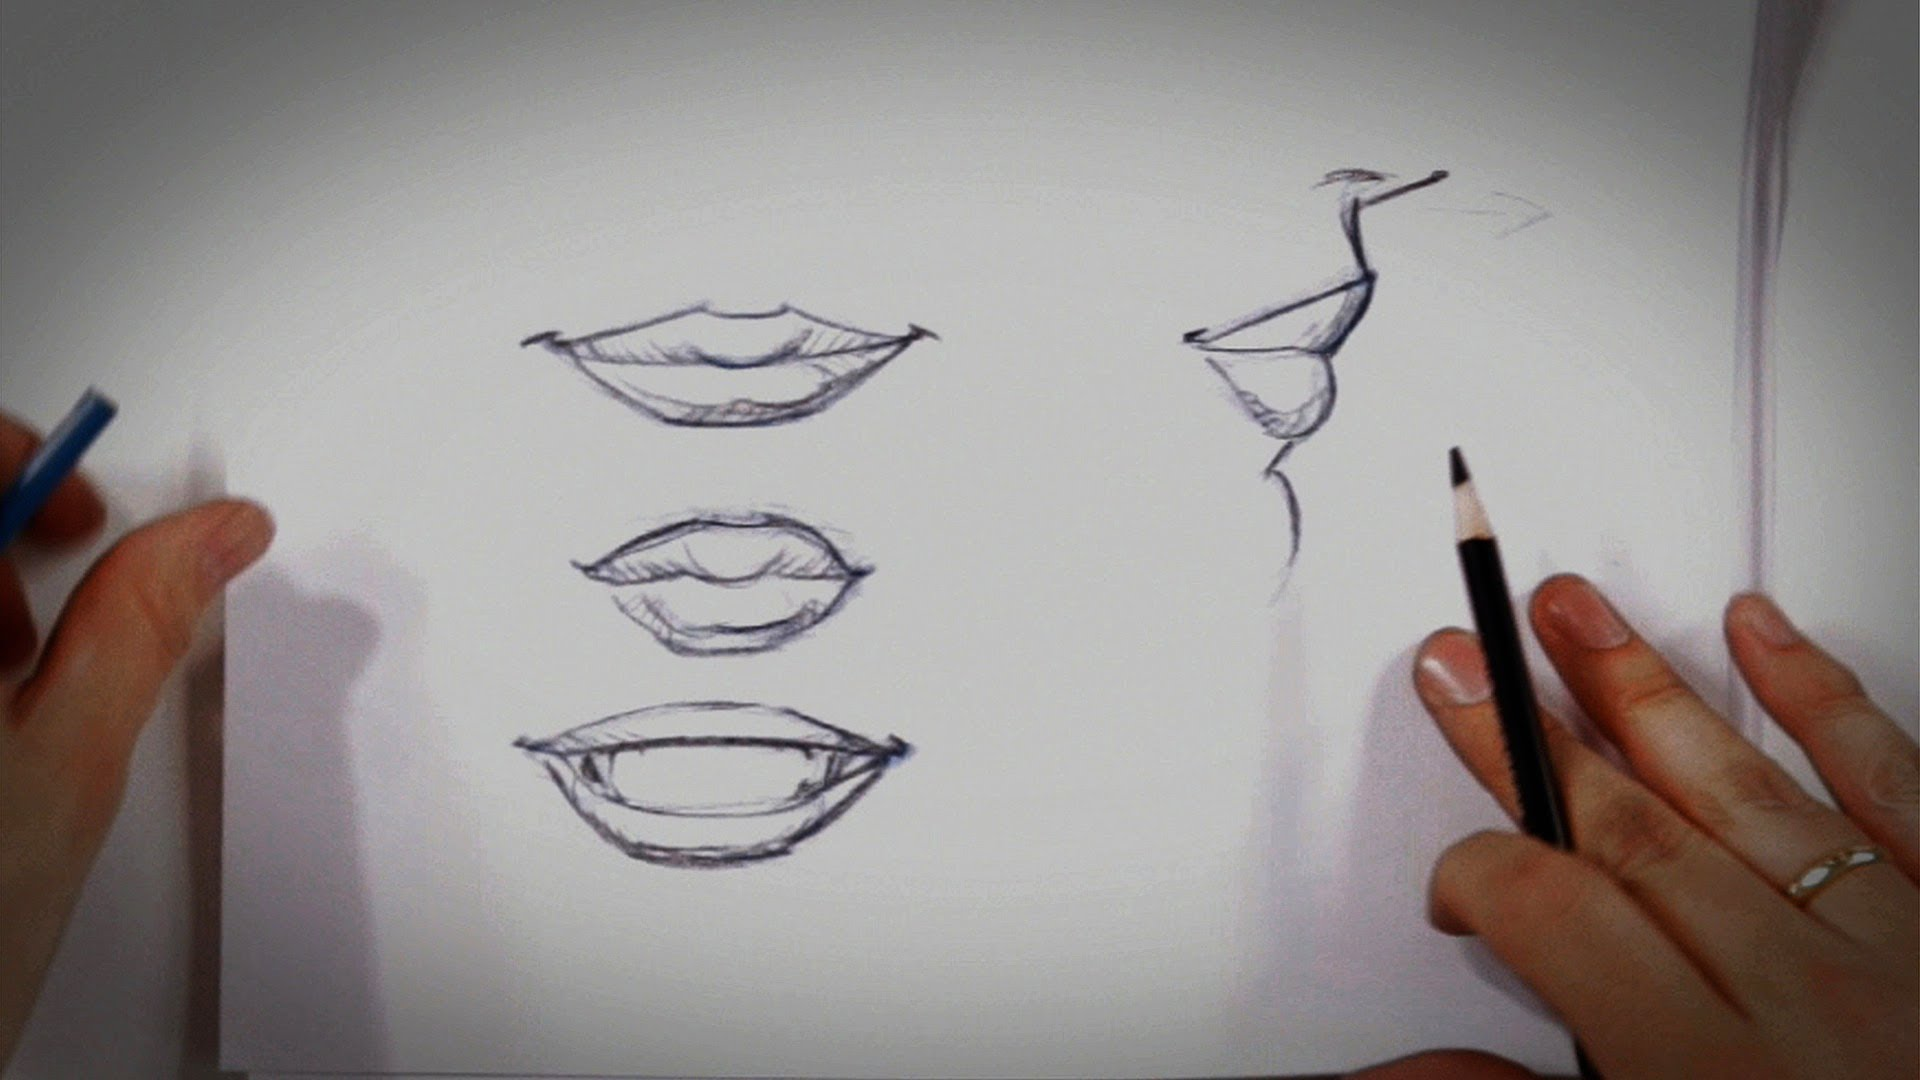 Drawn smile Tips How to Lips Draw